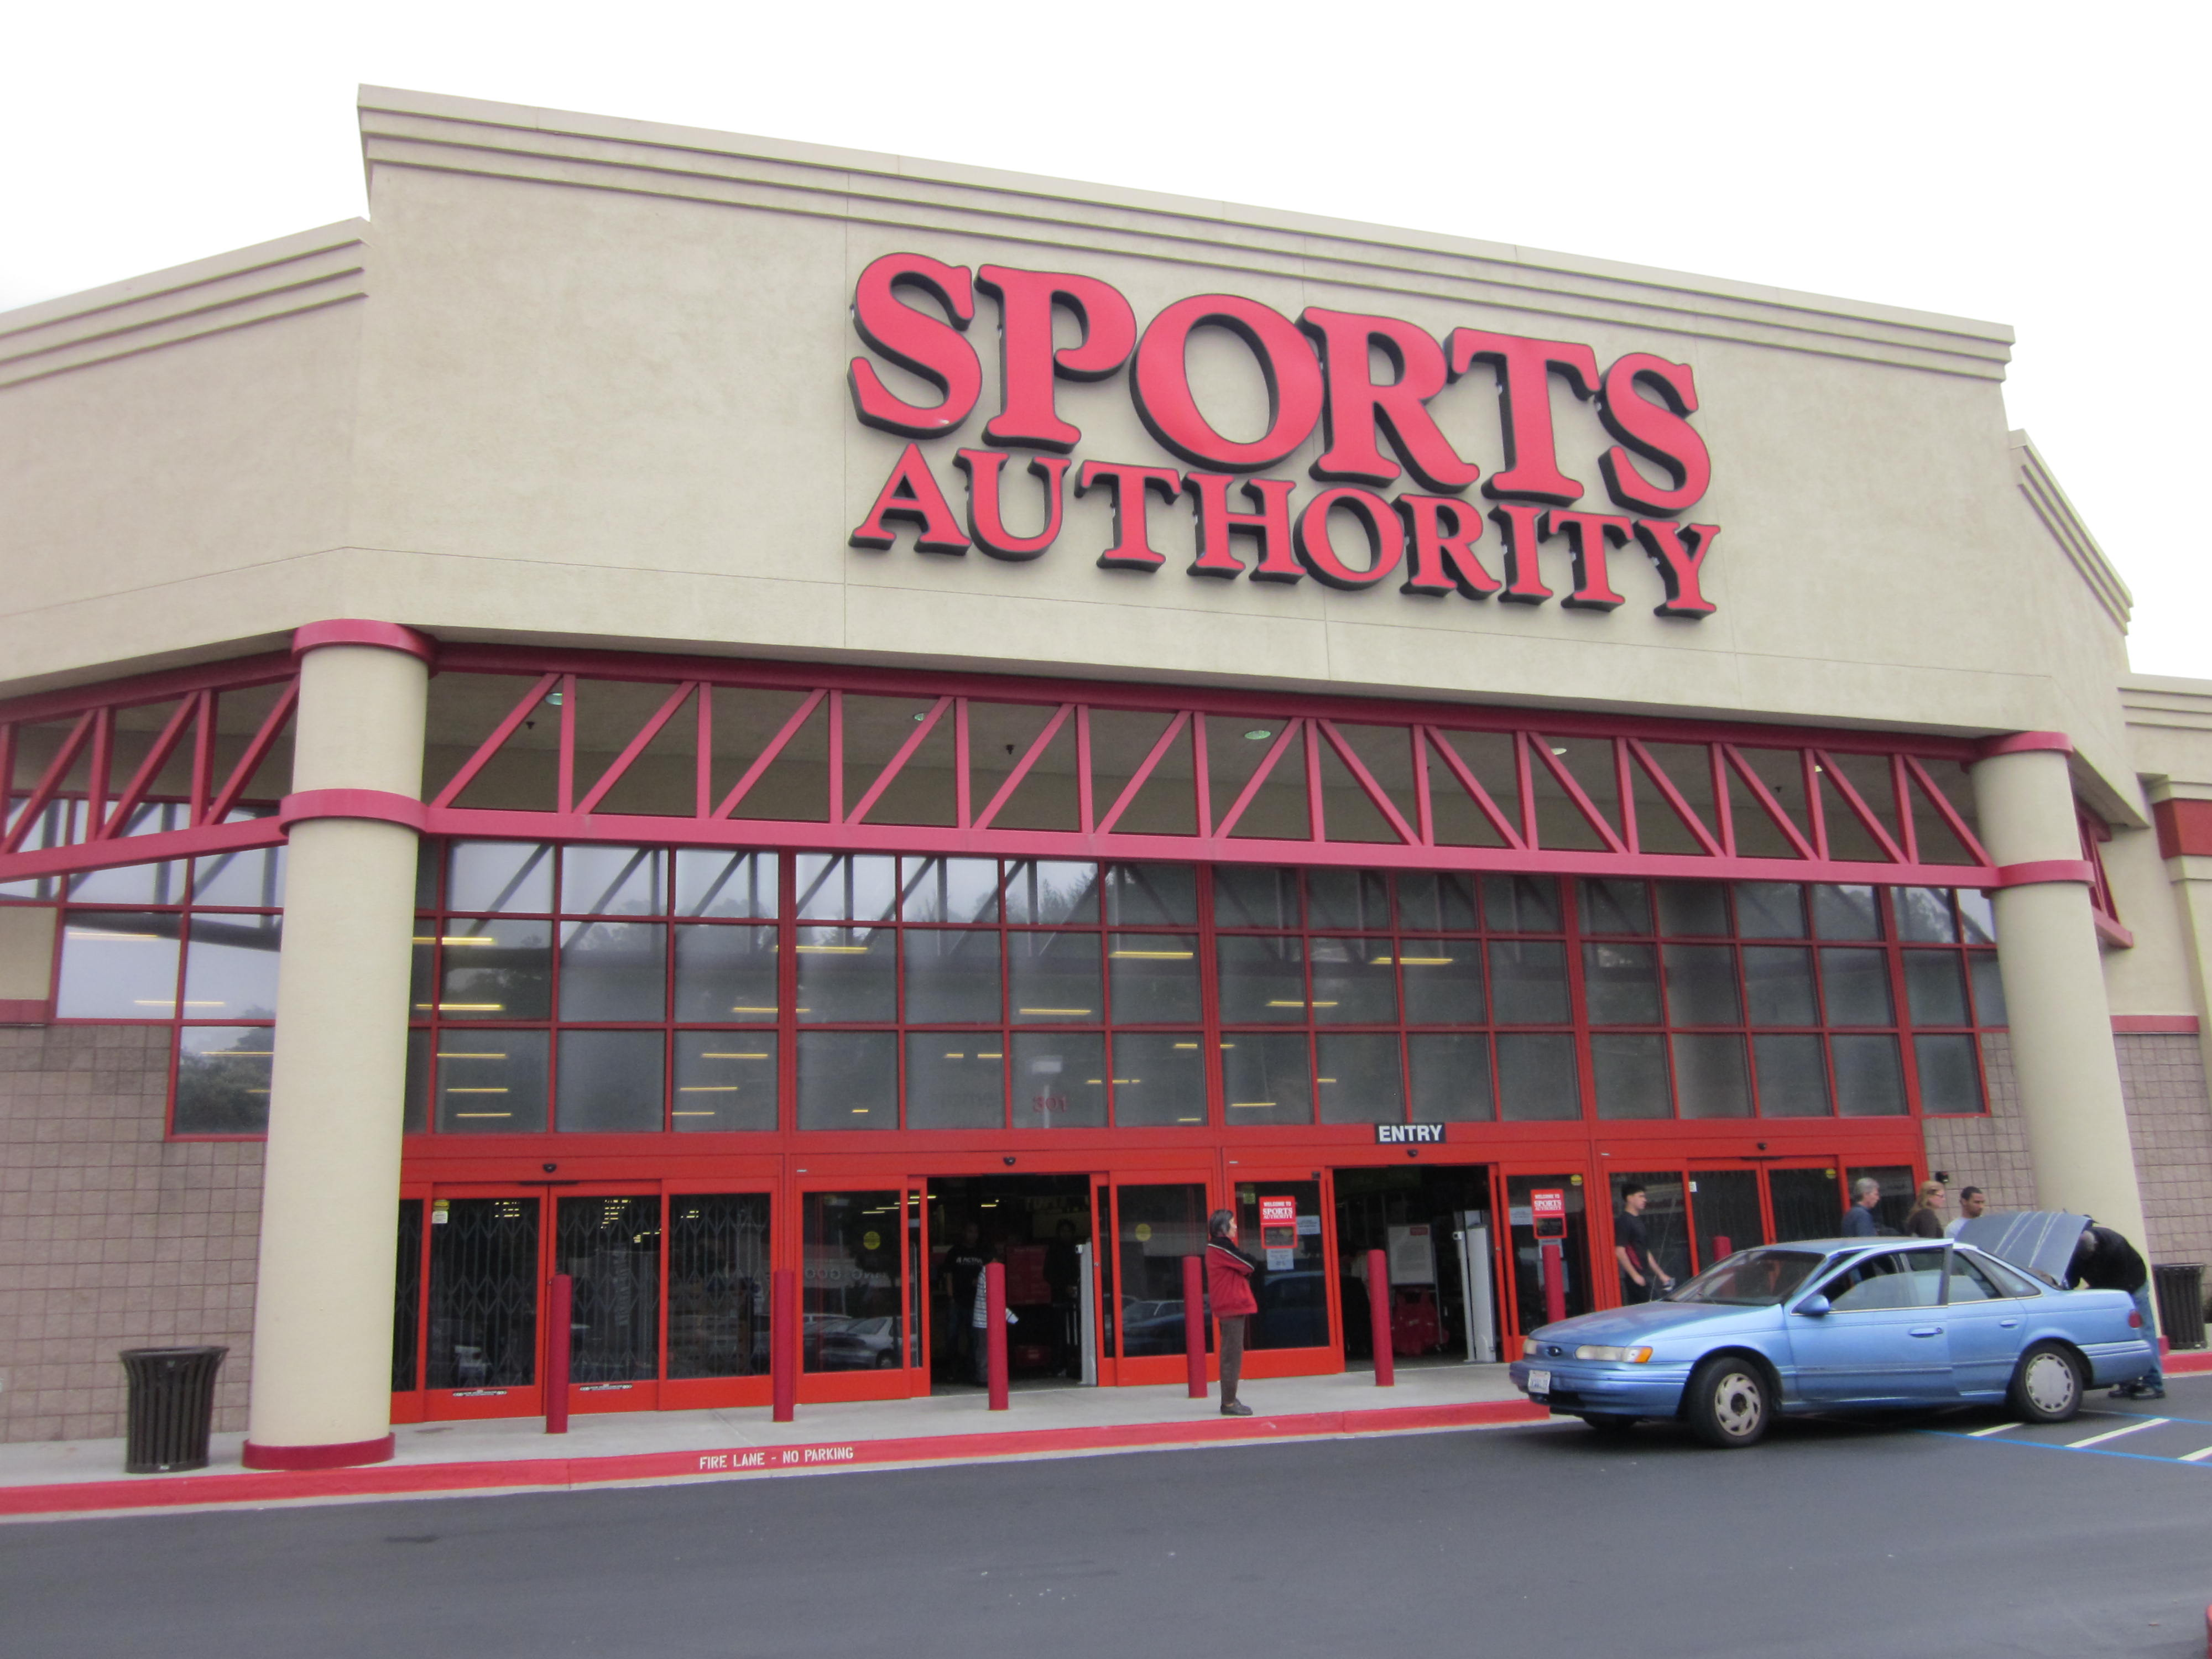 File:Sports Authority DC exterior JPG - Wikimedia Commons